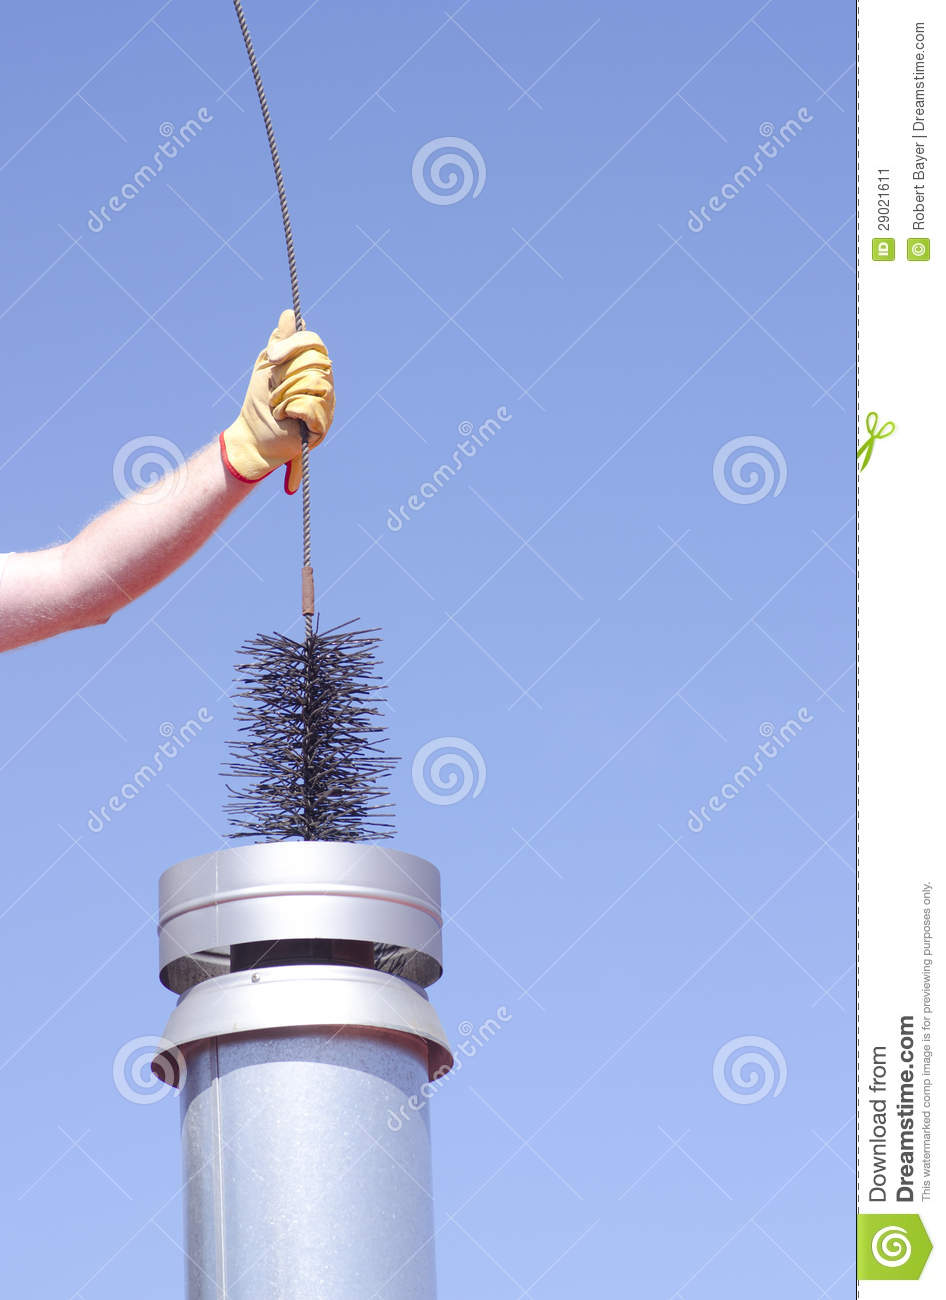 Image Result For All Clean Chimney Sweep